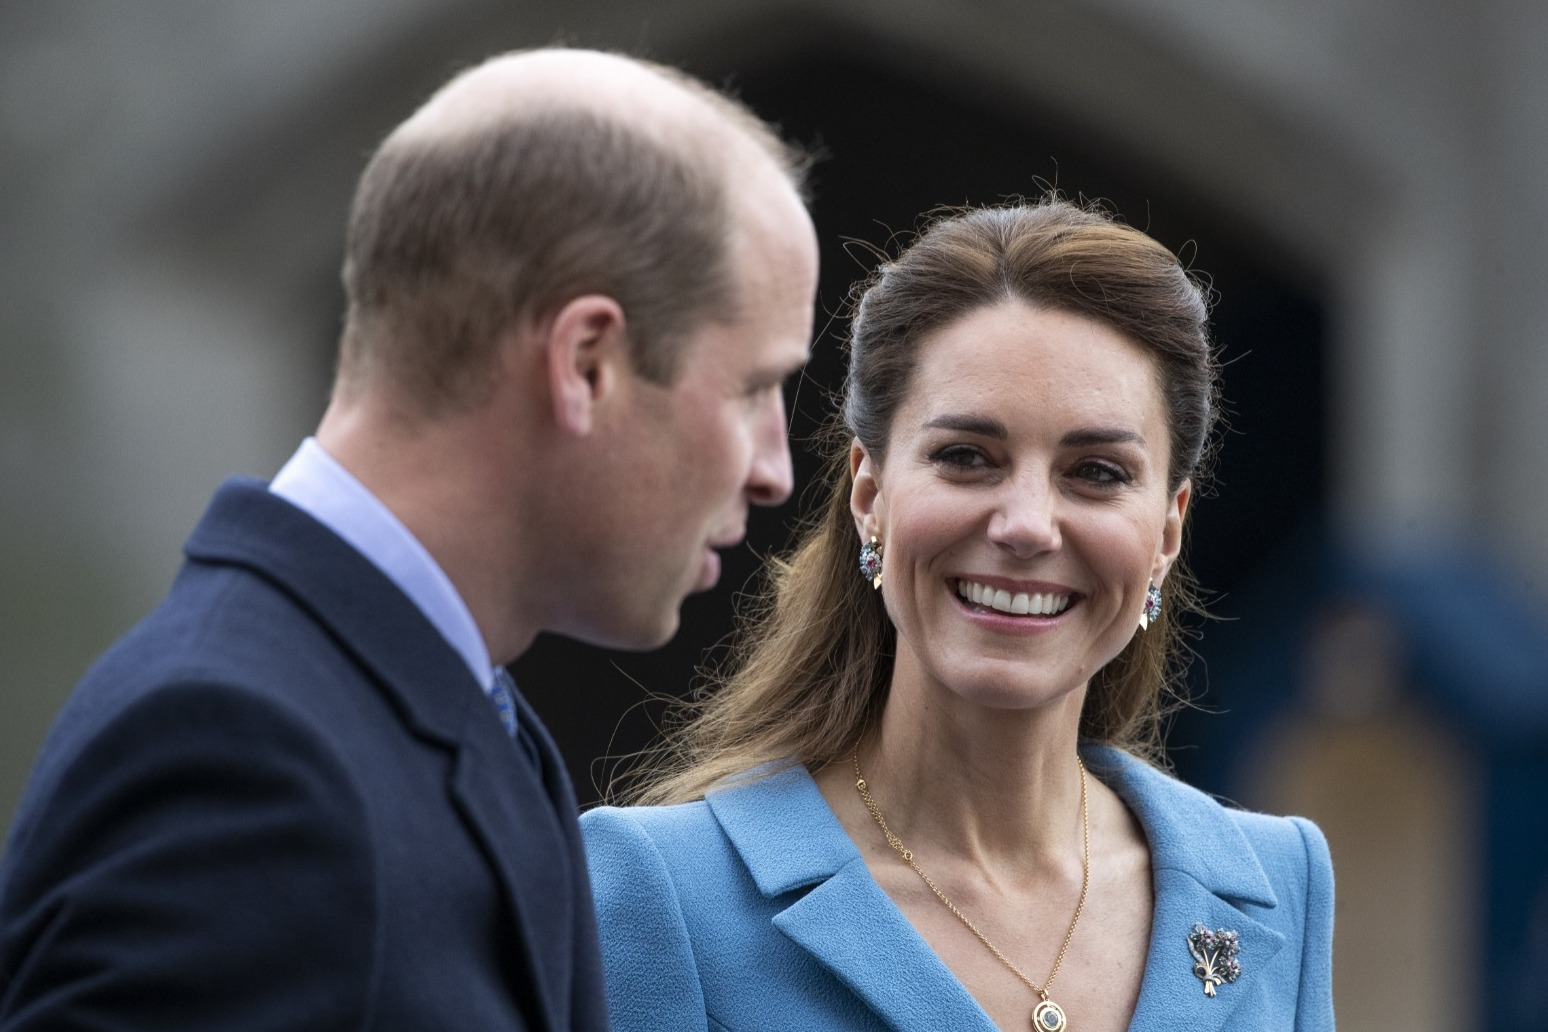 William and Kate's three-day tour by royal train cost almost £48,000